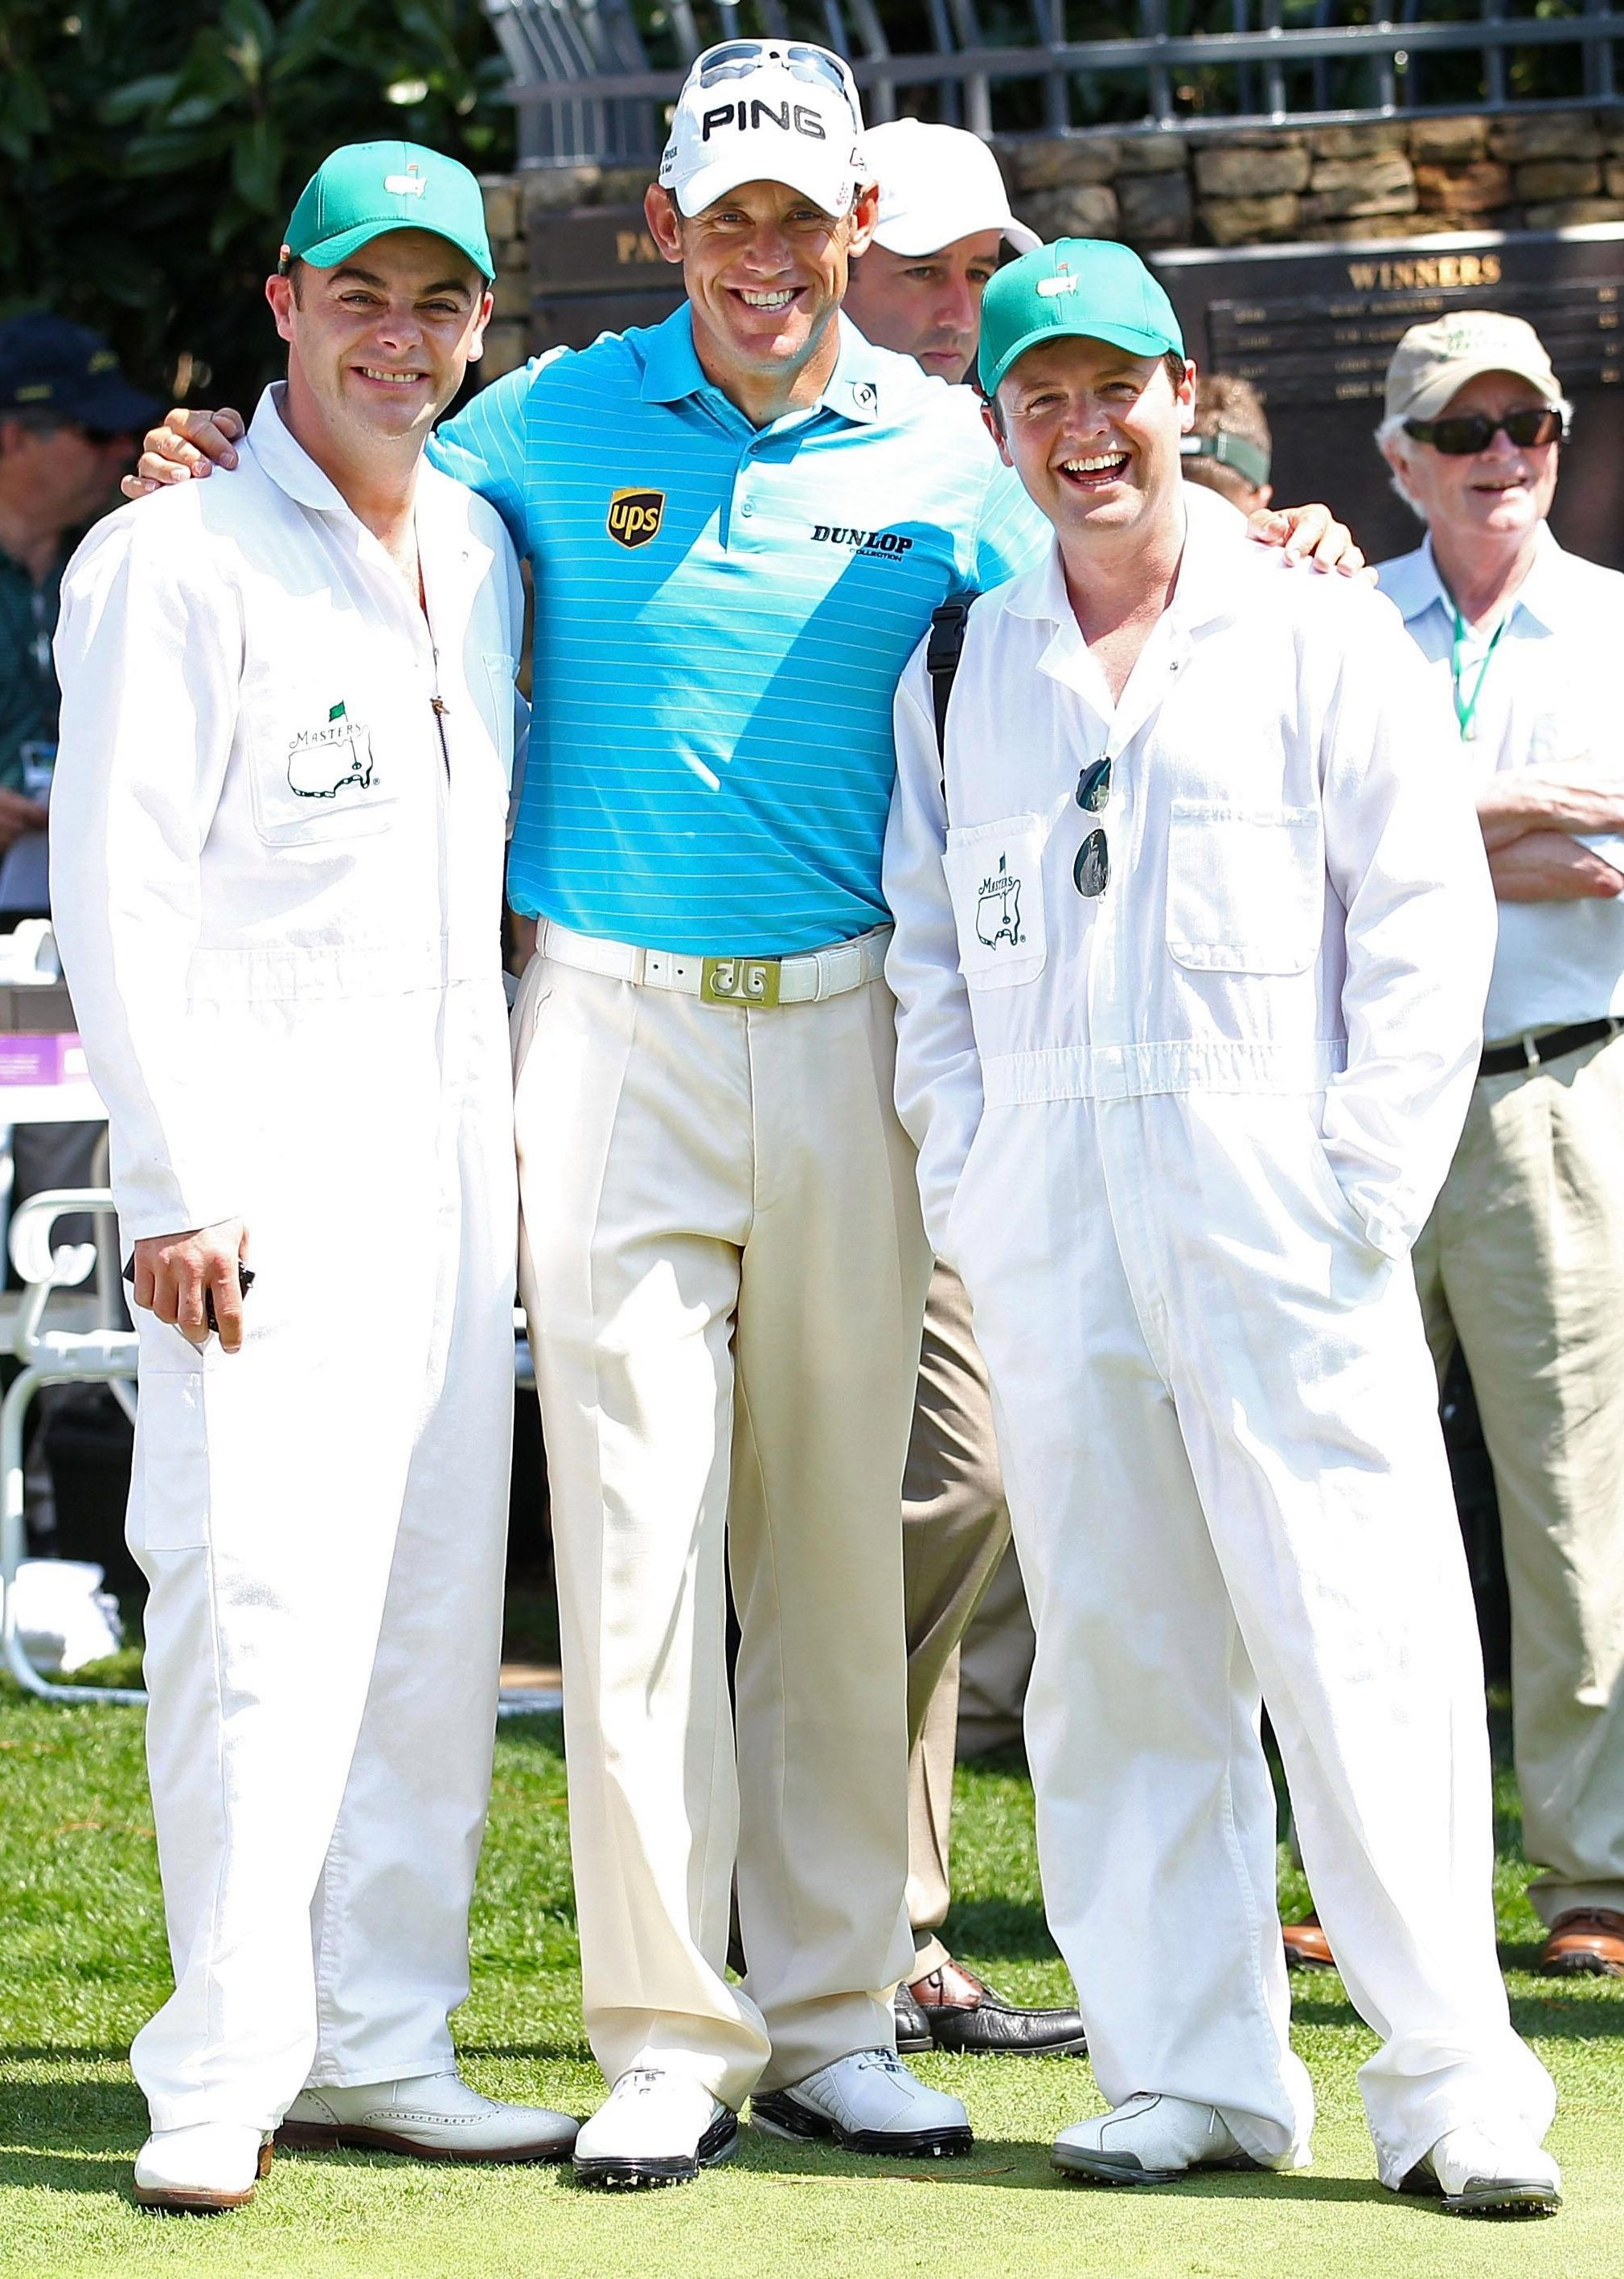 The celeb double act are huge golf nuts and hang out here with England's former world No 1 Lee Westwood